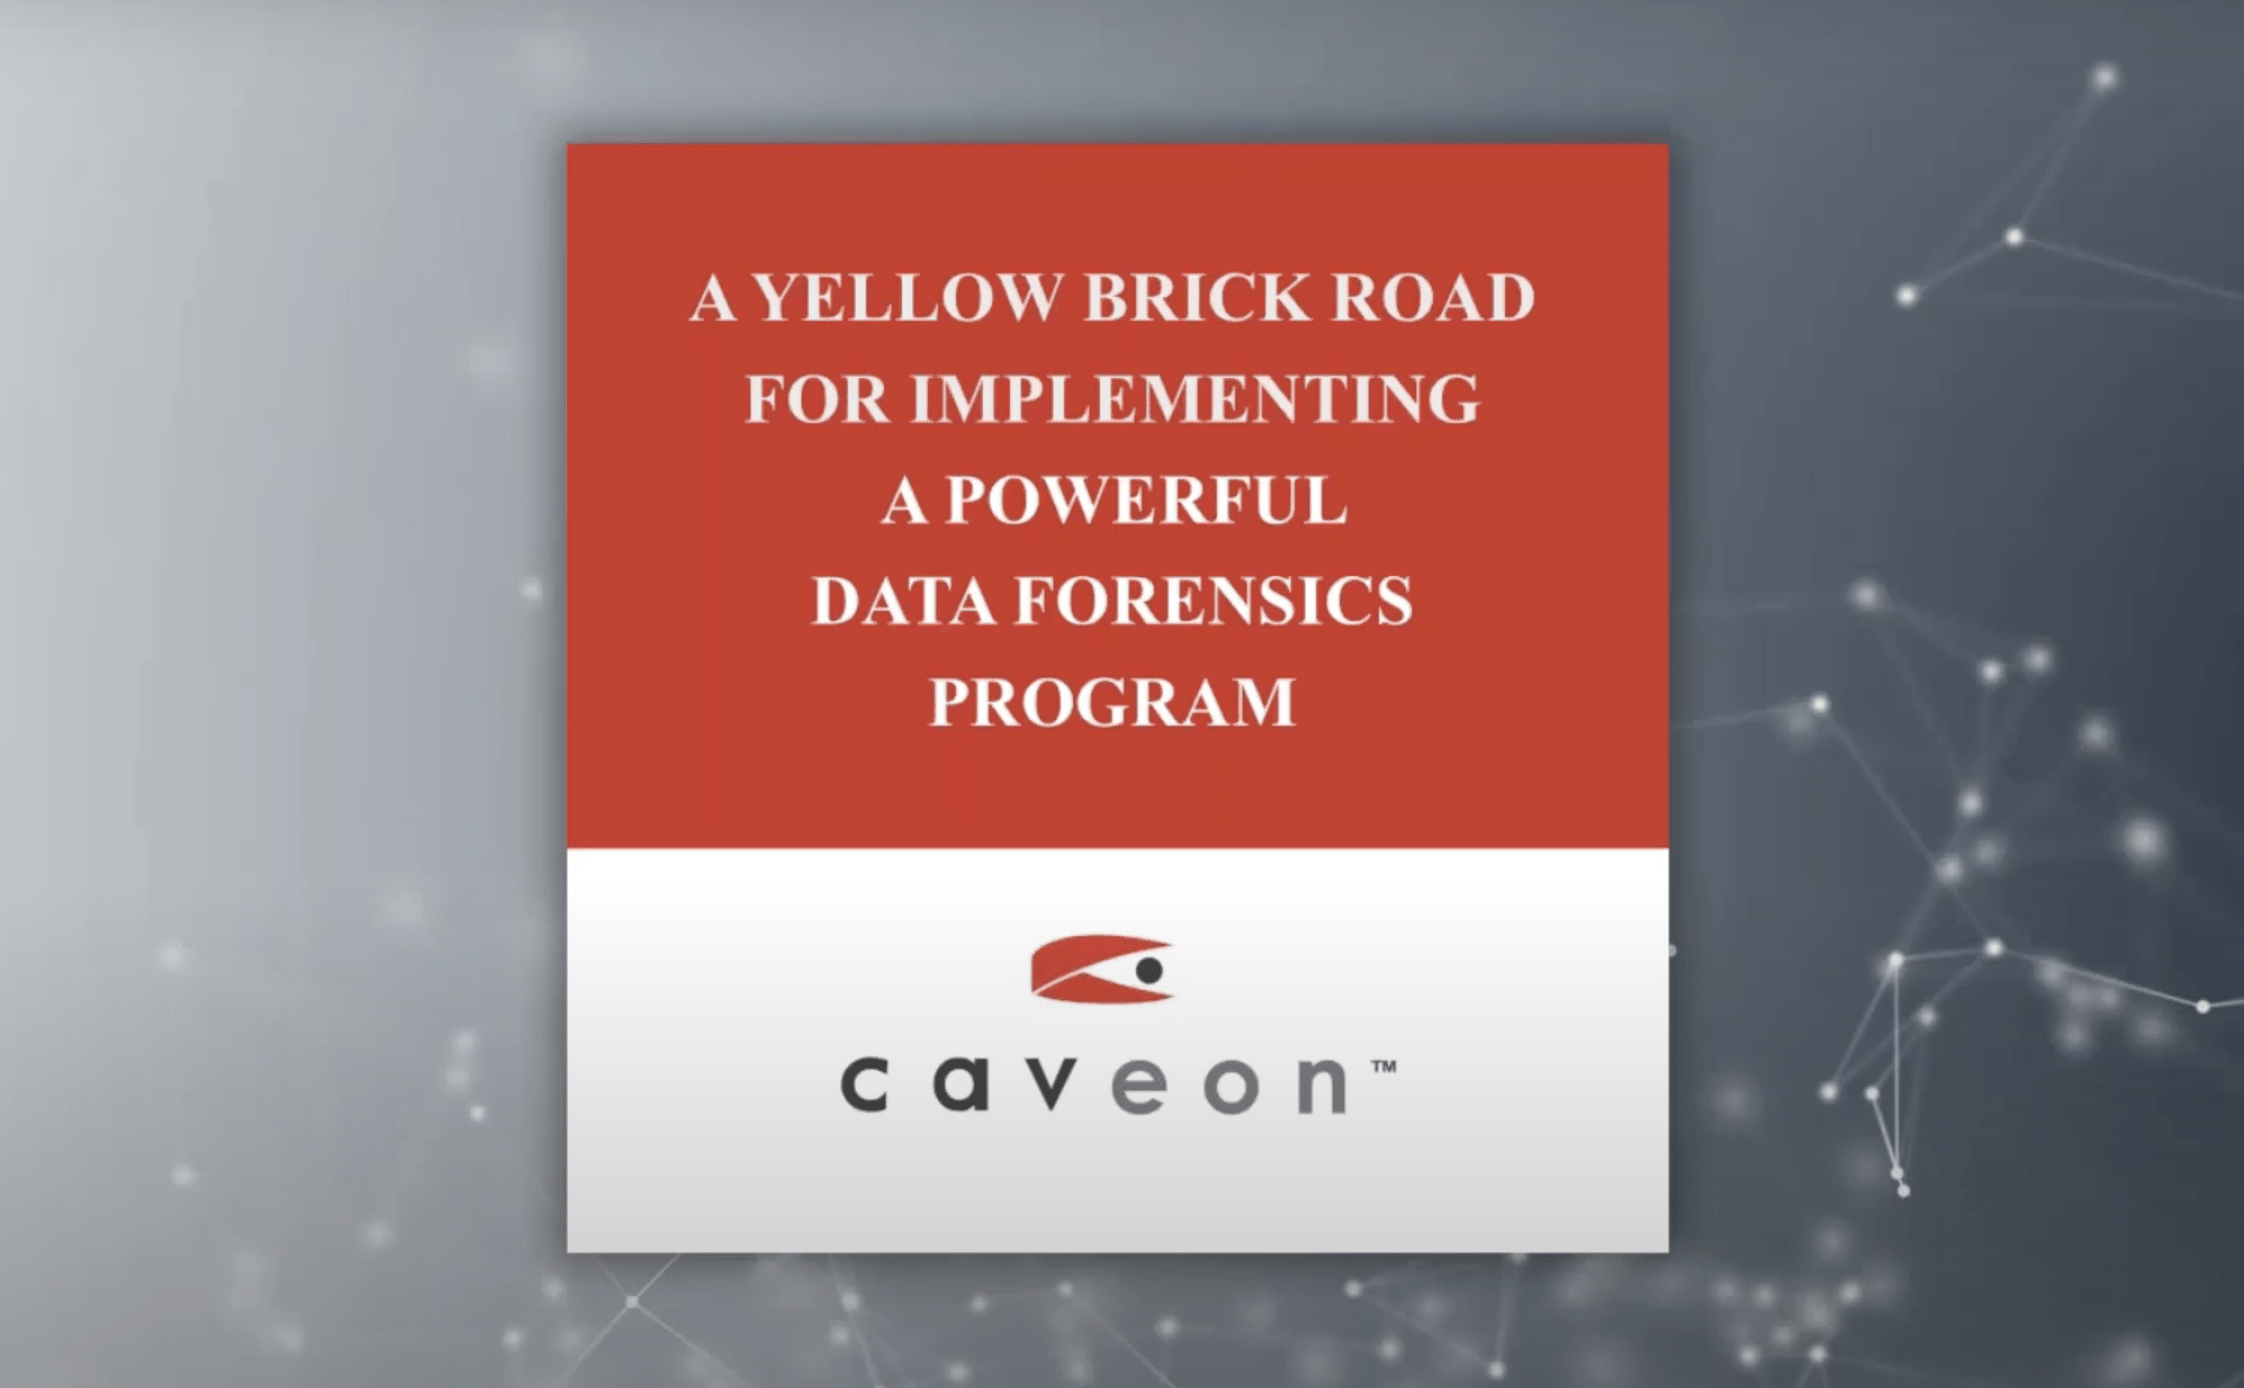 A Yellow Brick Road for Implementing a Powerful Data Forensics Program